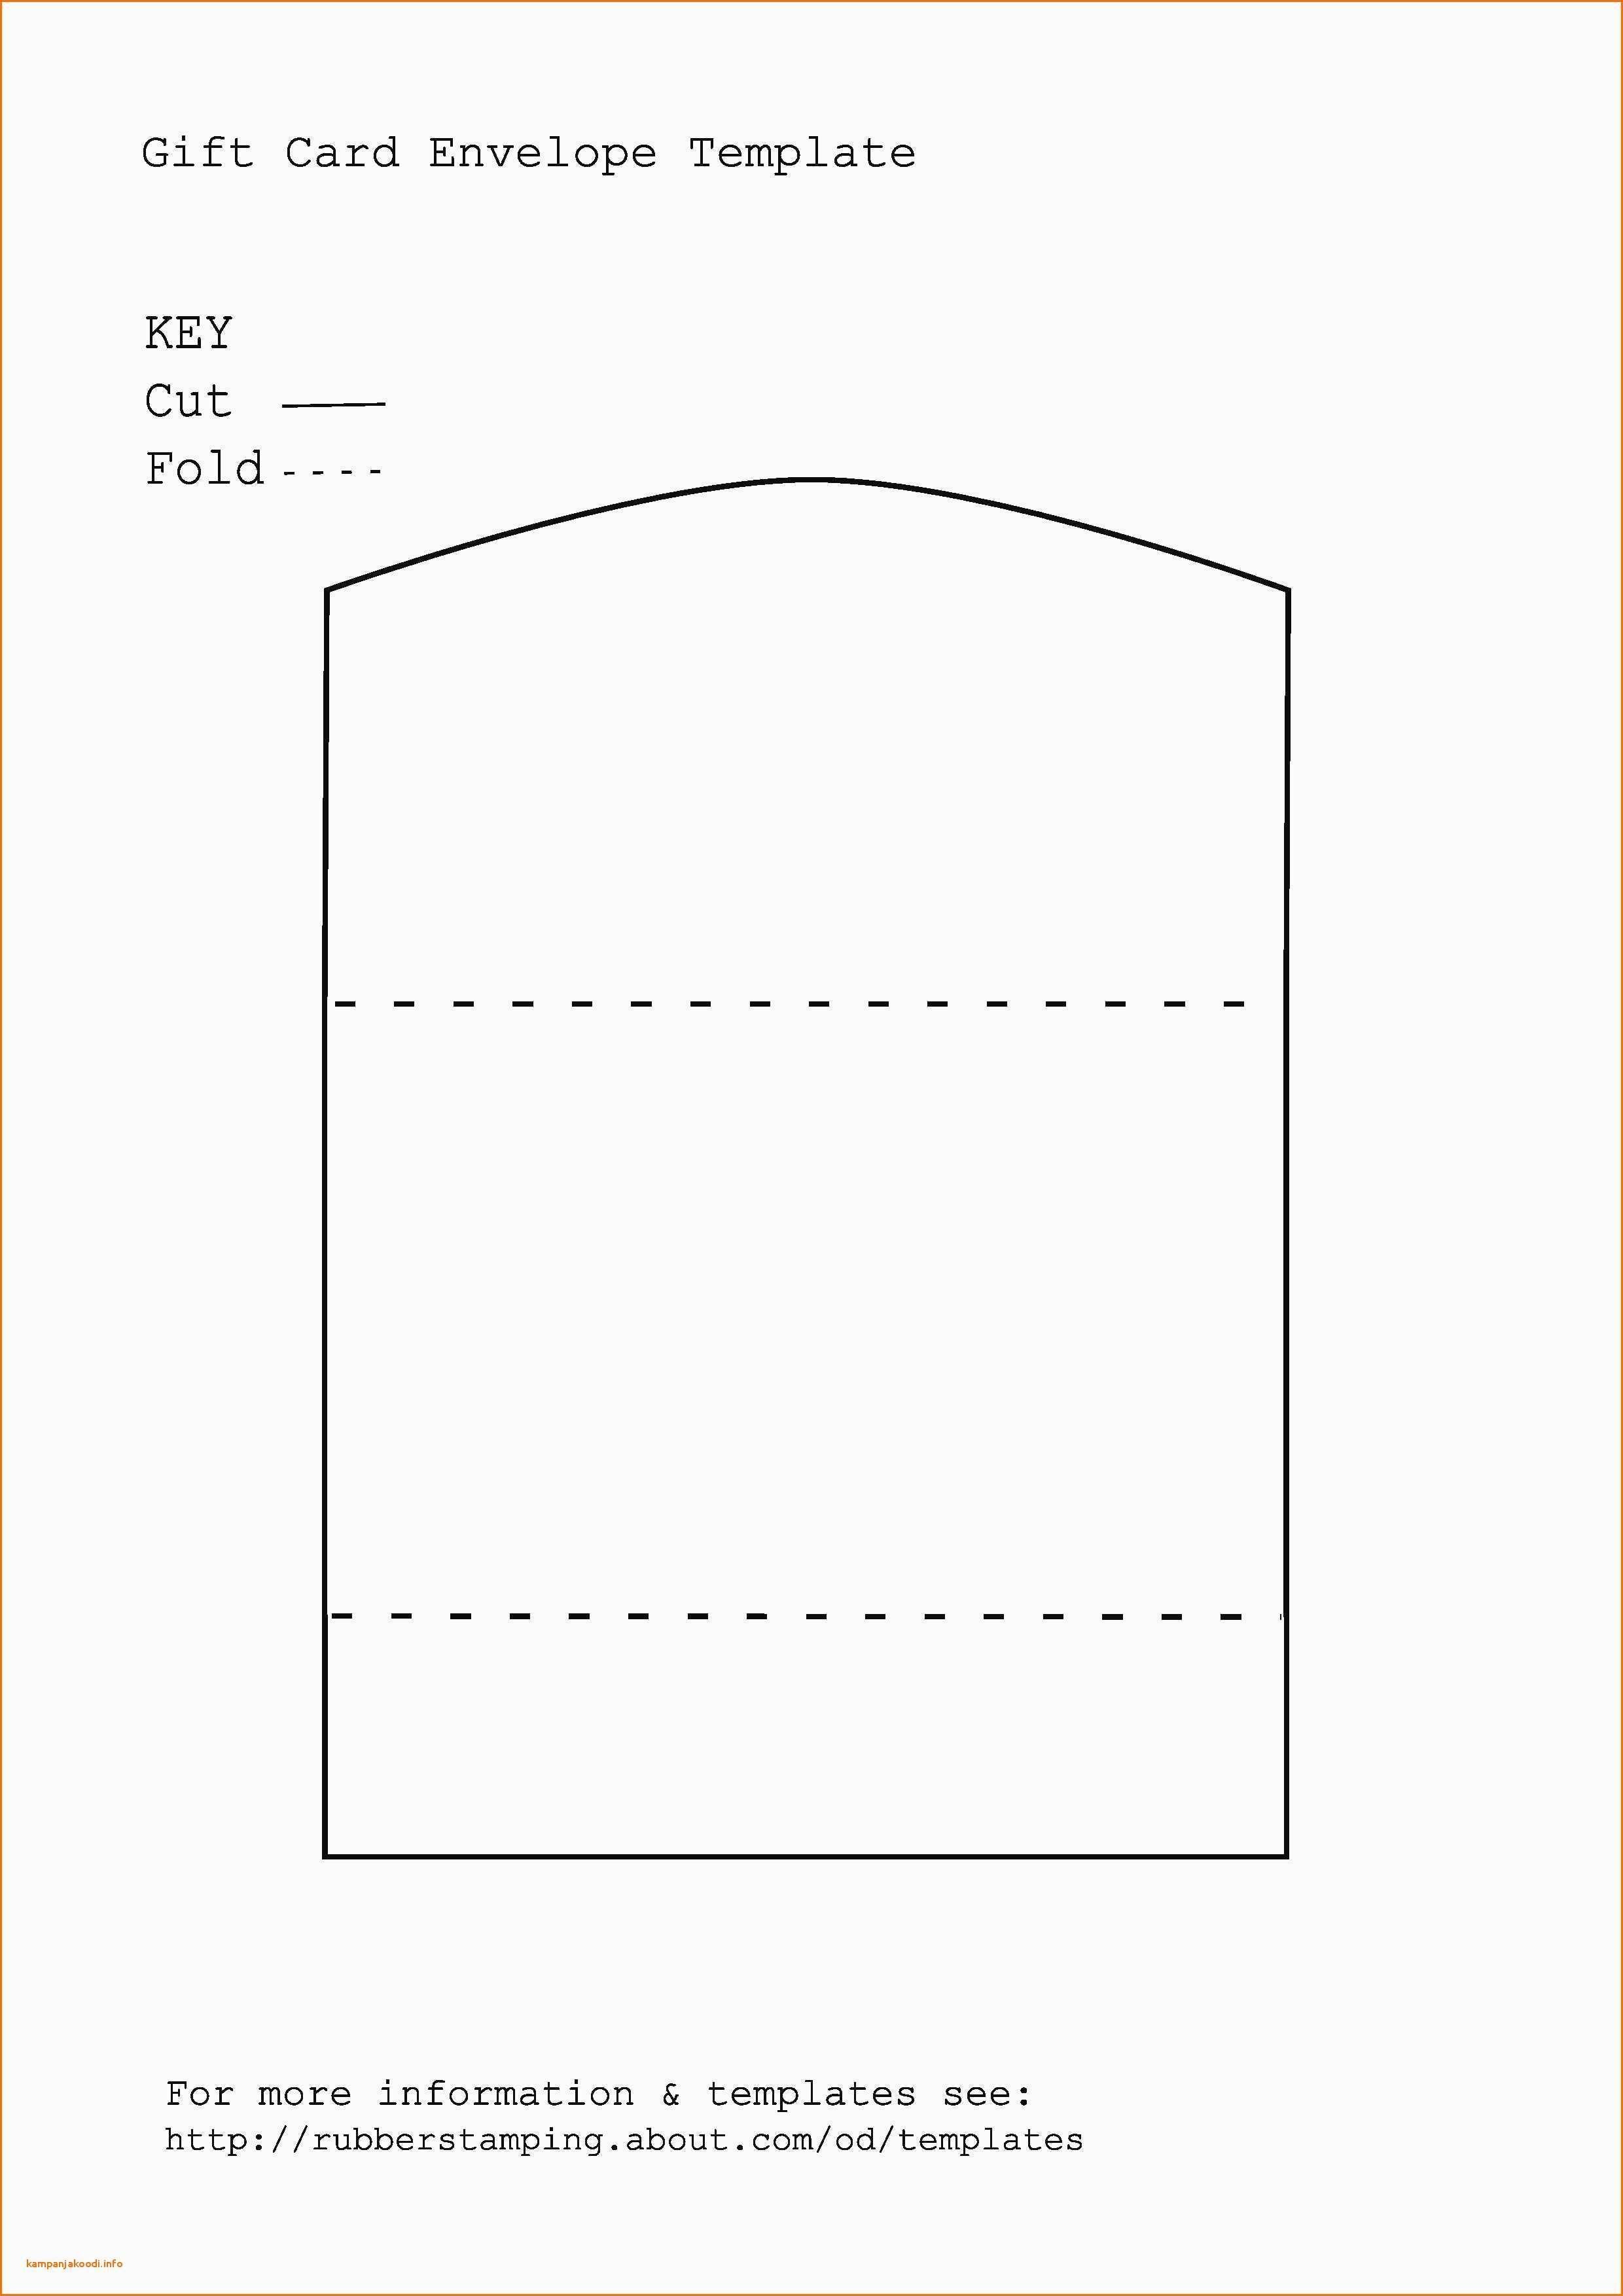 How To Make A C5 Envelope Ehow Uk Envelope Template Printable Envelope Design Template Envelope Printing Template